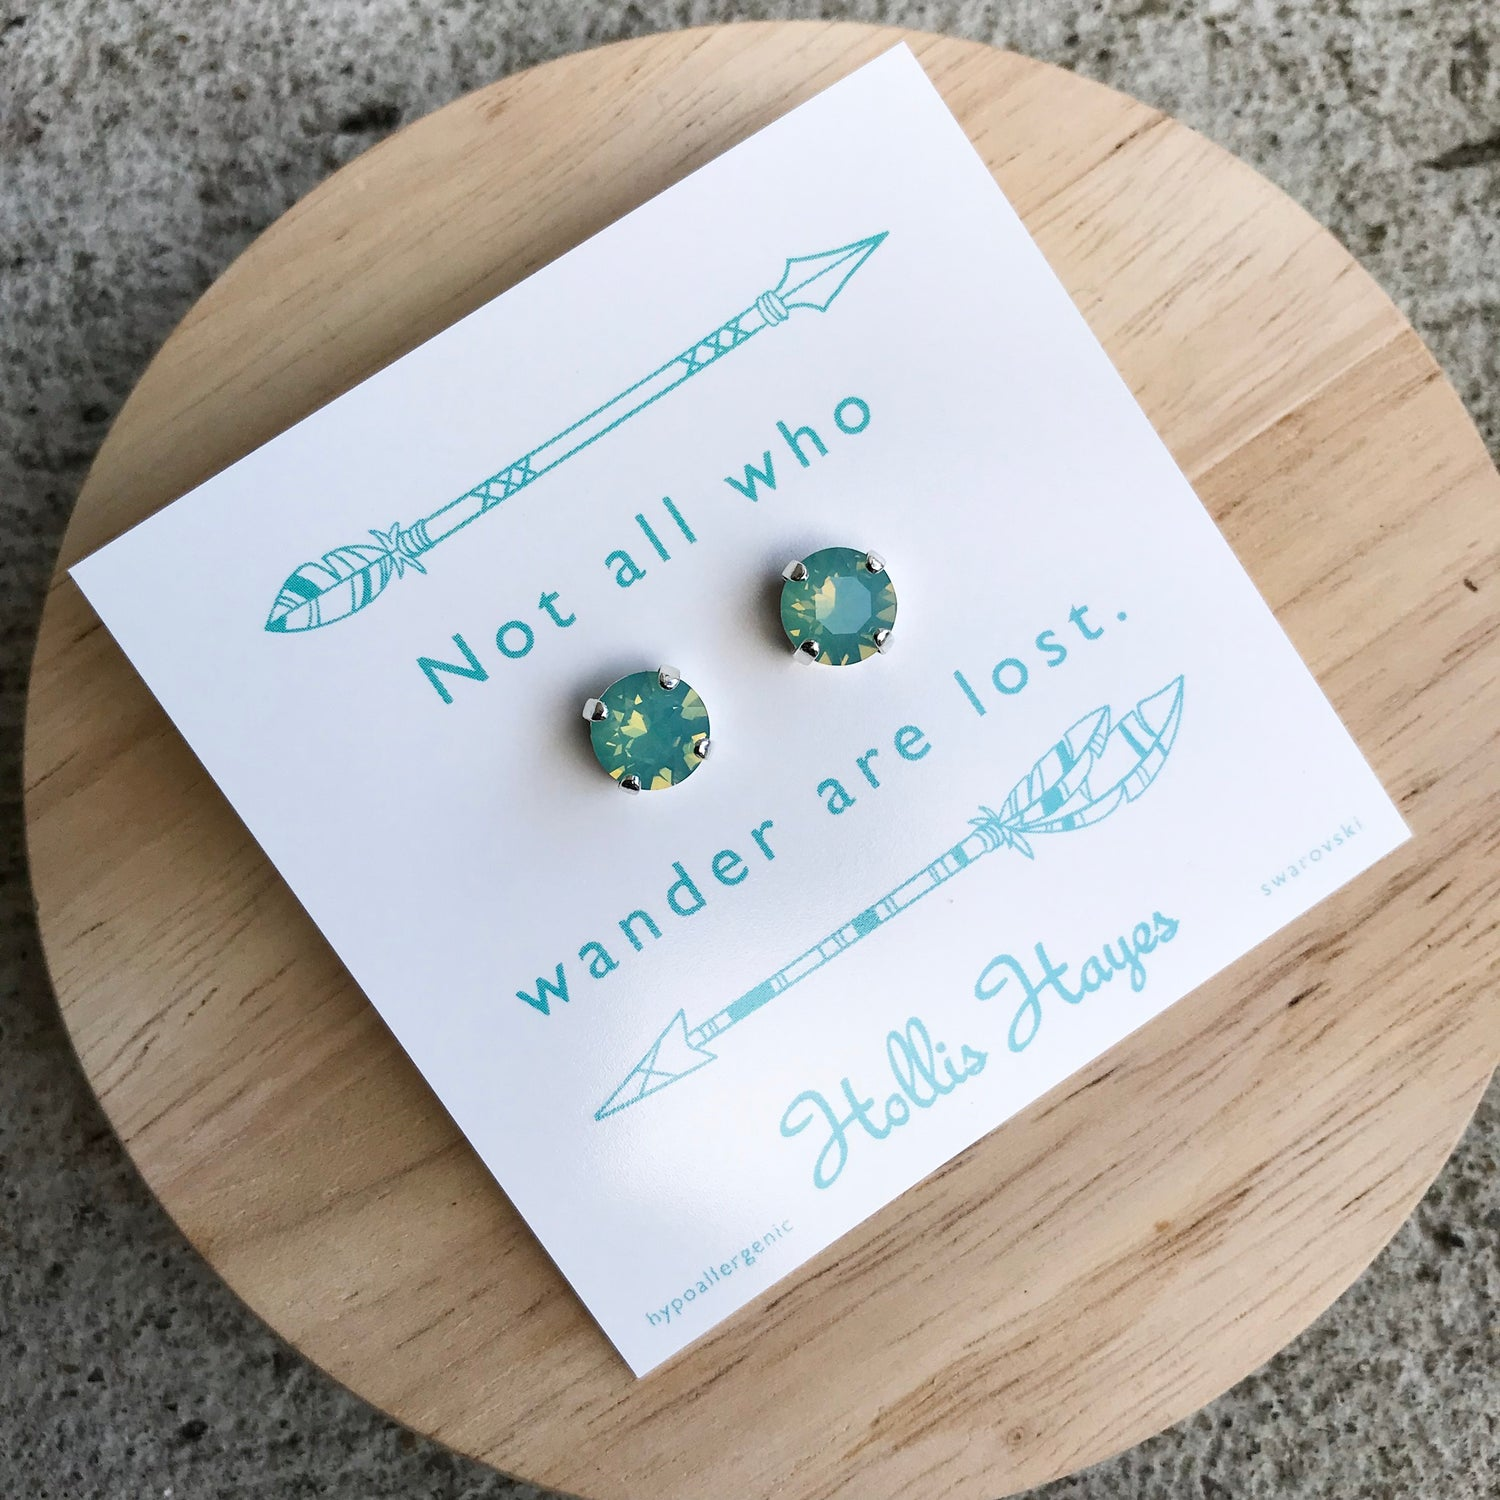 Seafoam Swarovski studs - Not all who wander are lost